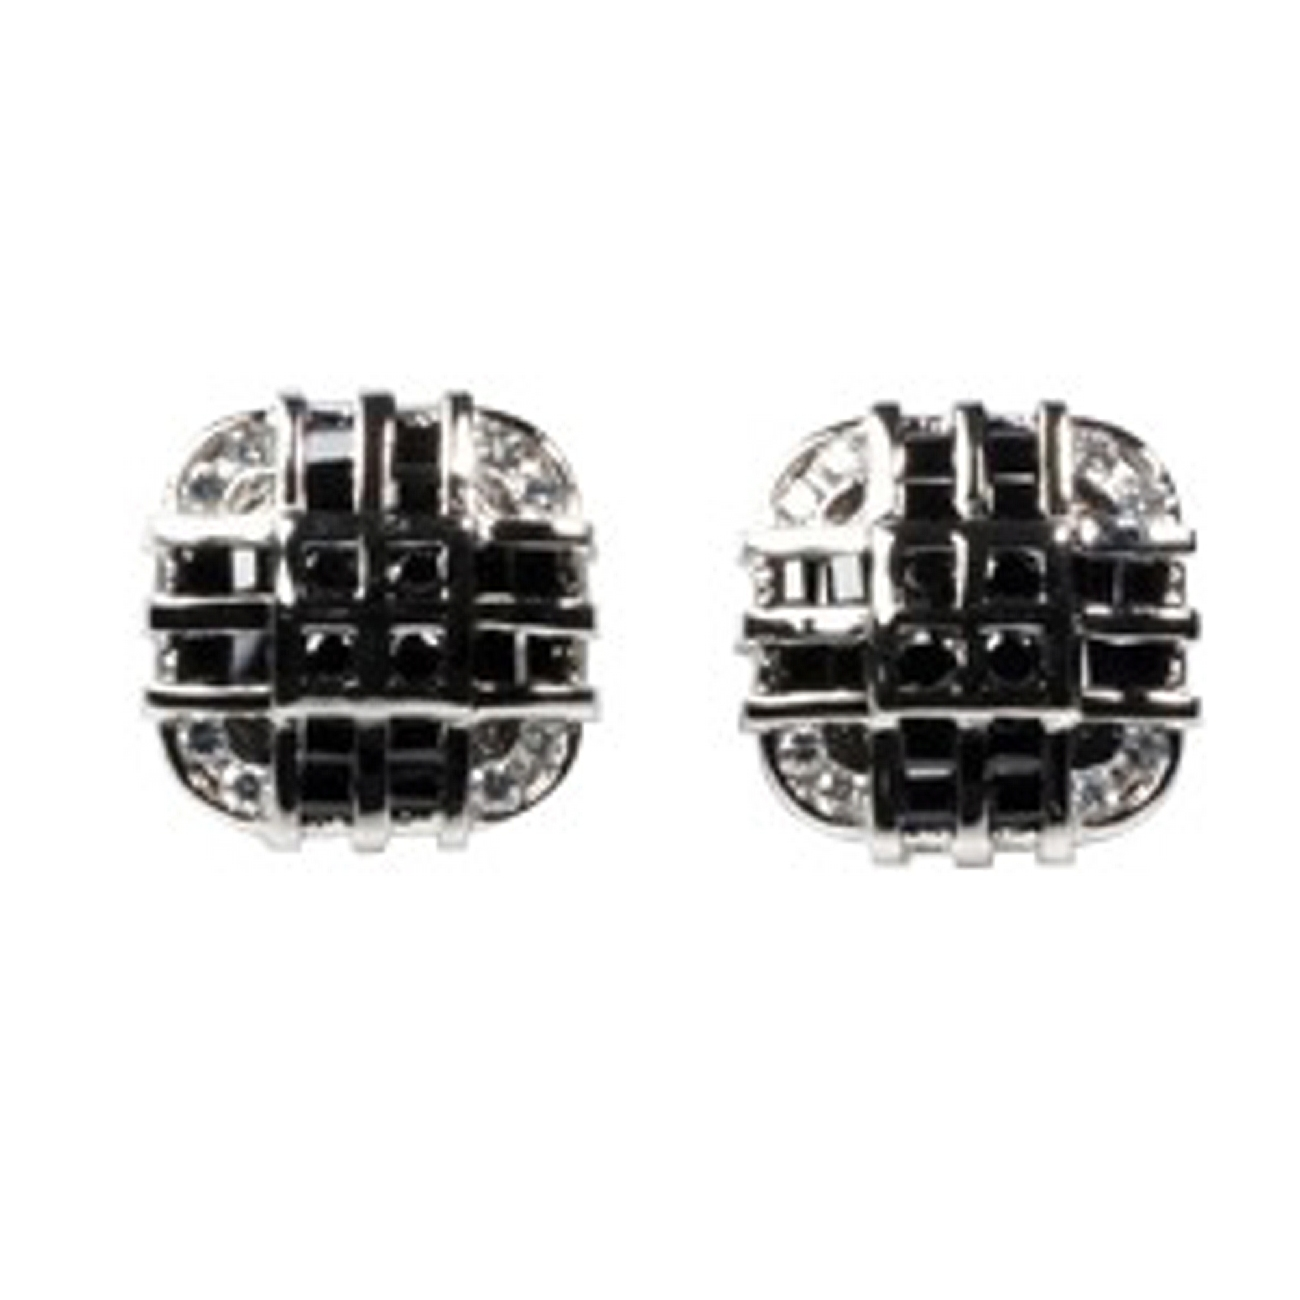 "1/4"" Silver Rounded Corners Square Black Clear CZ Men's Post Earrings"